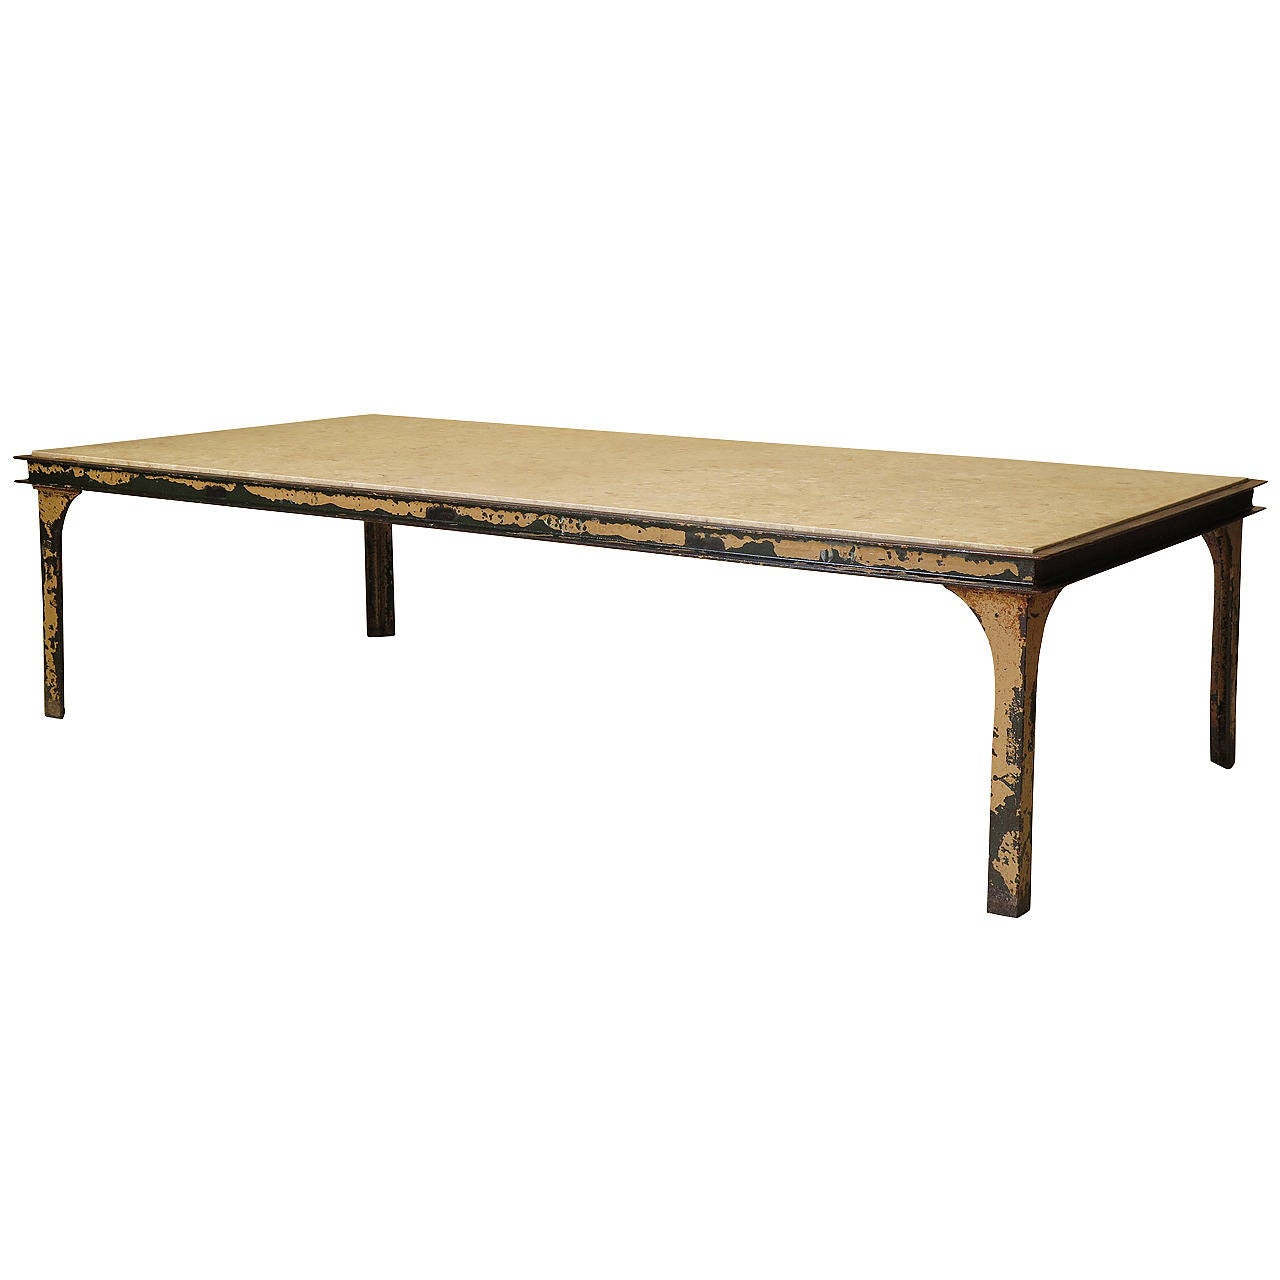 Large Iron And Stone Coffee Table France 1950s For Sale At 1stdibs